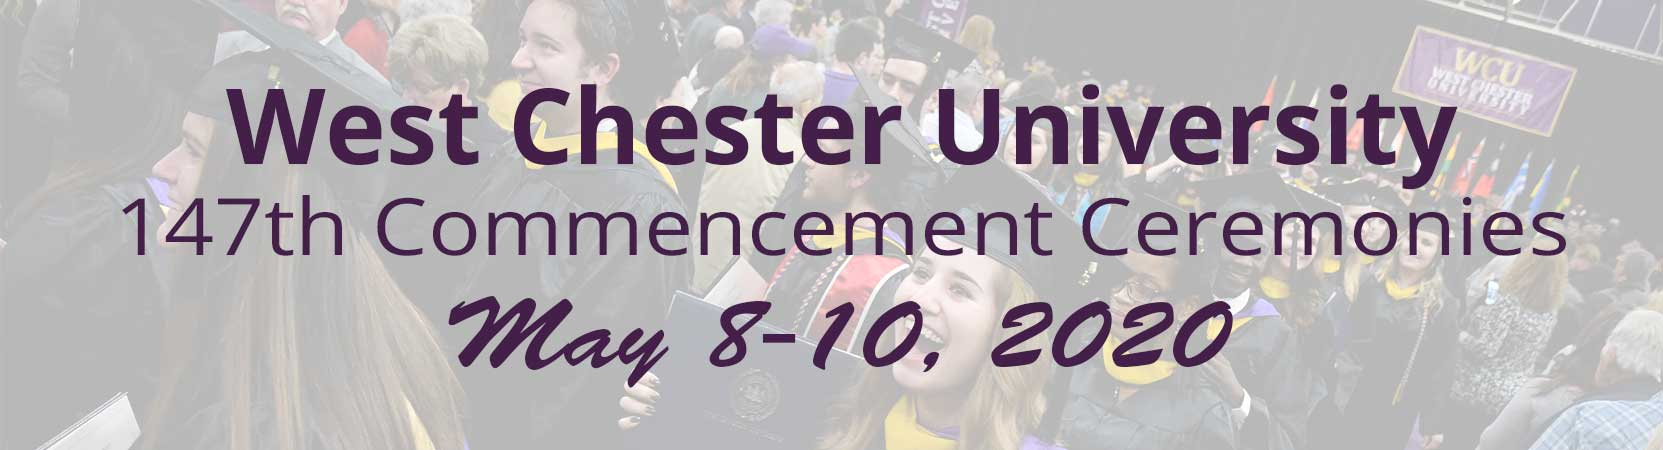 West Chester University - 147th Commencement Ceremonies - May 8-10, 2020